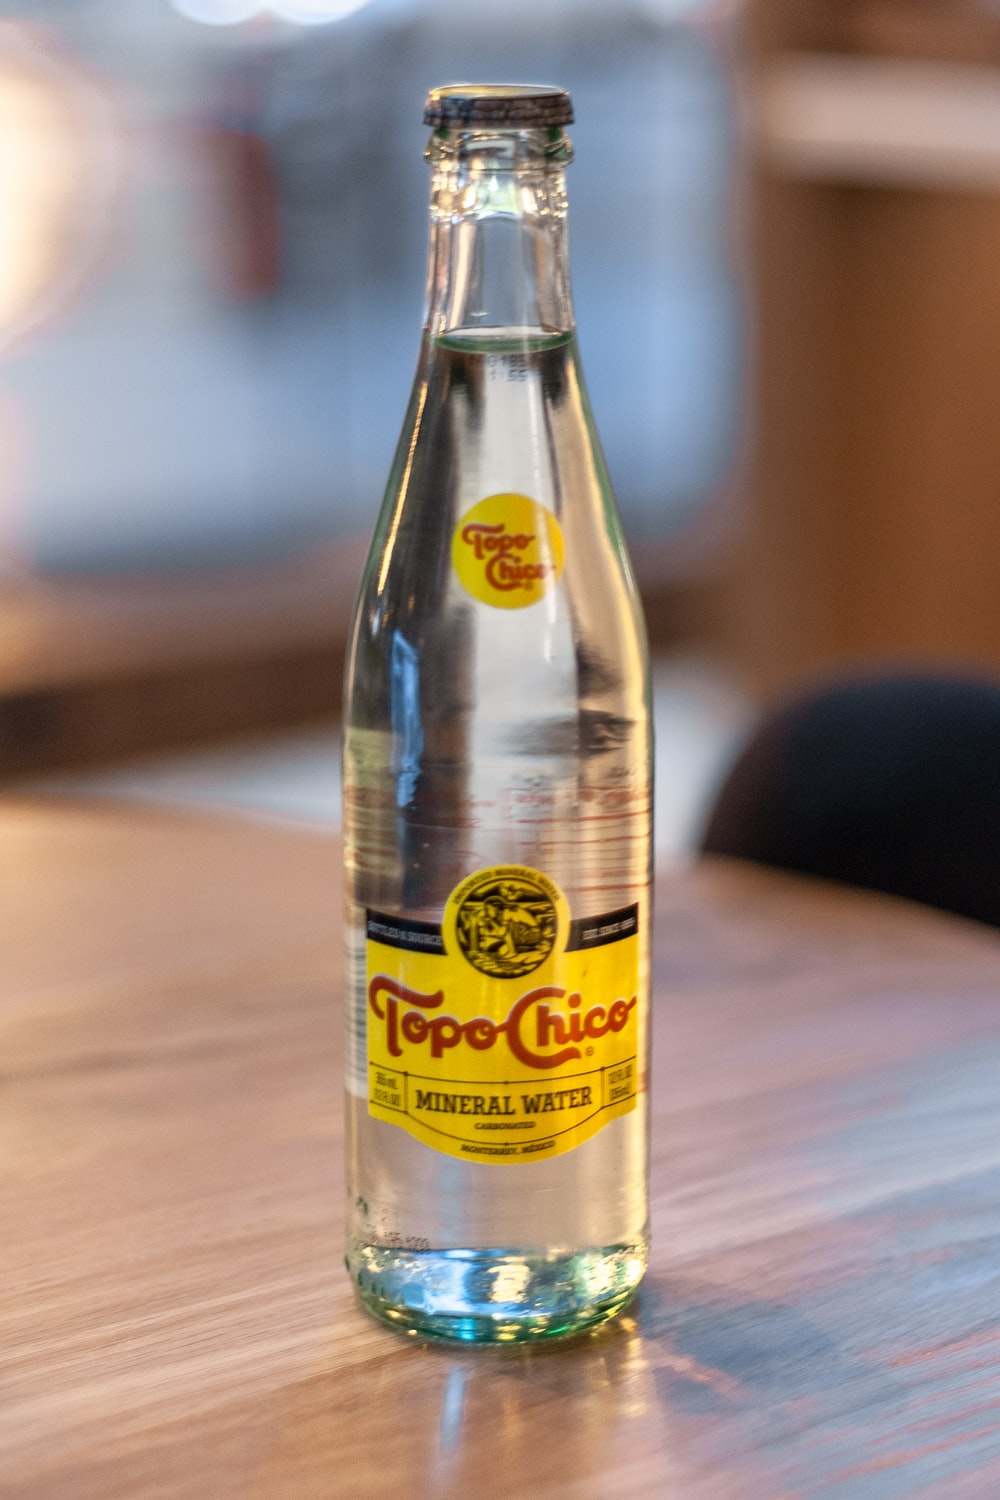 Tope Chico bottle